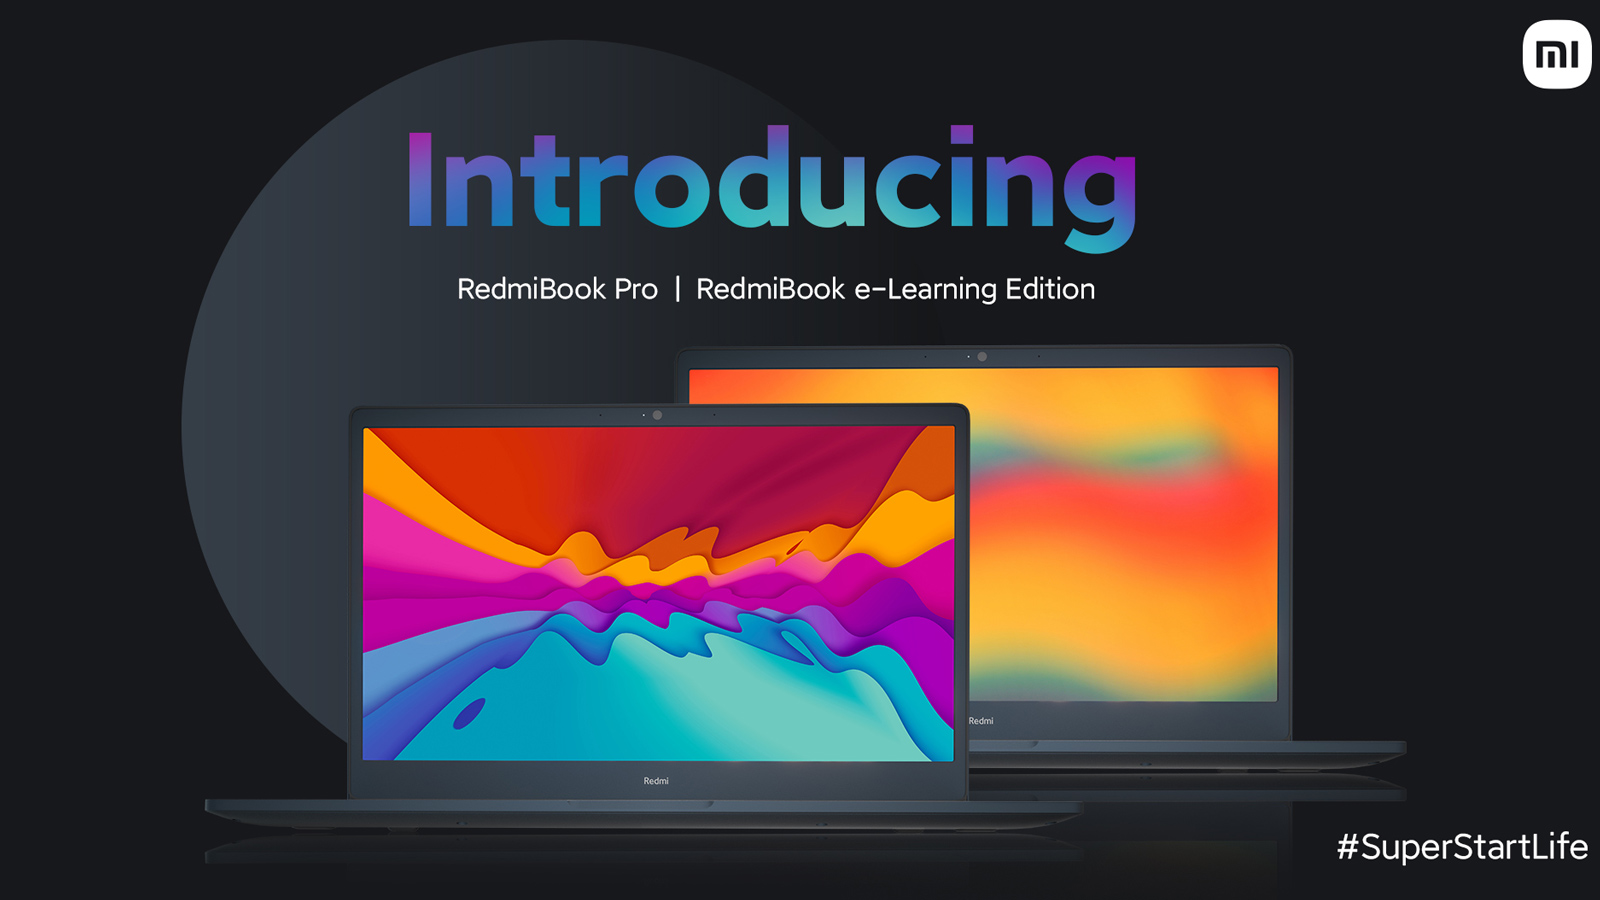 RedmiBook Pro and e-Learning Edition